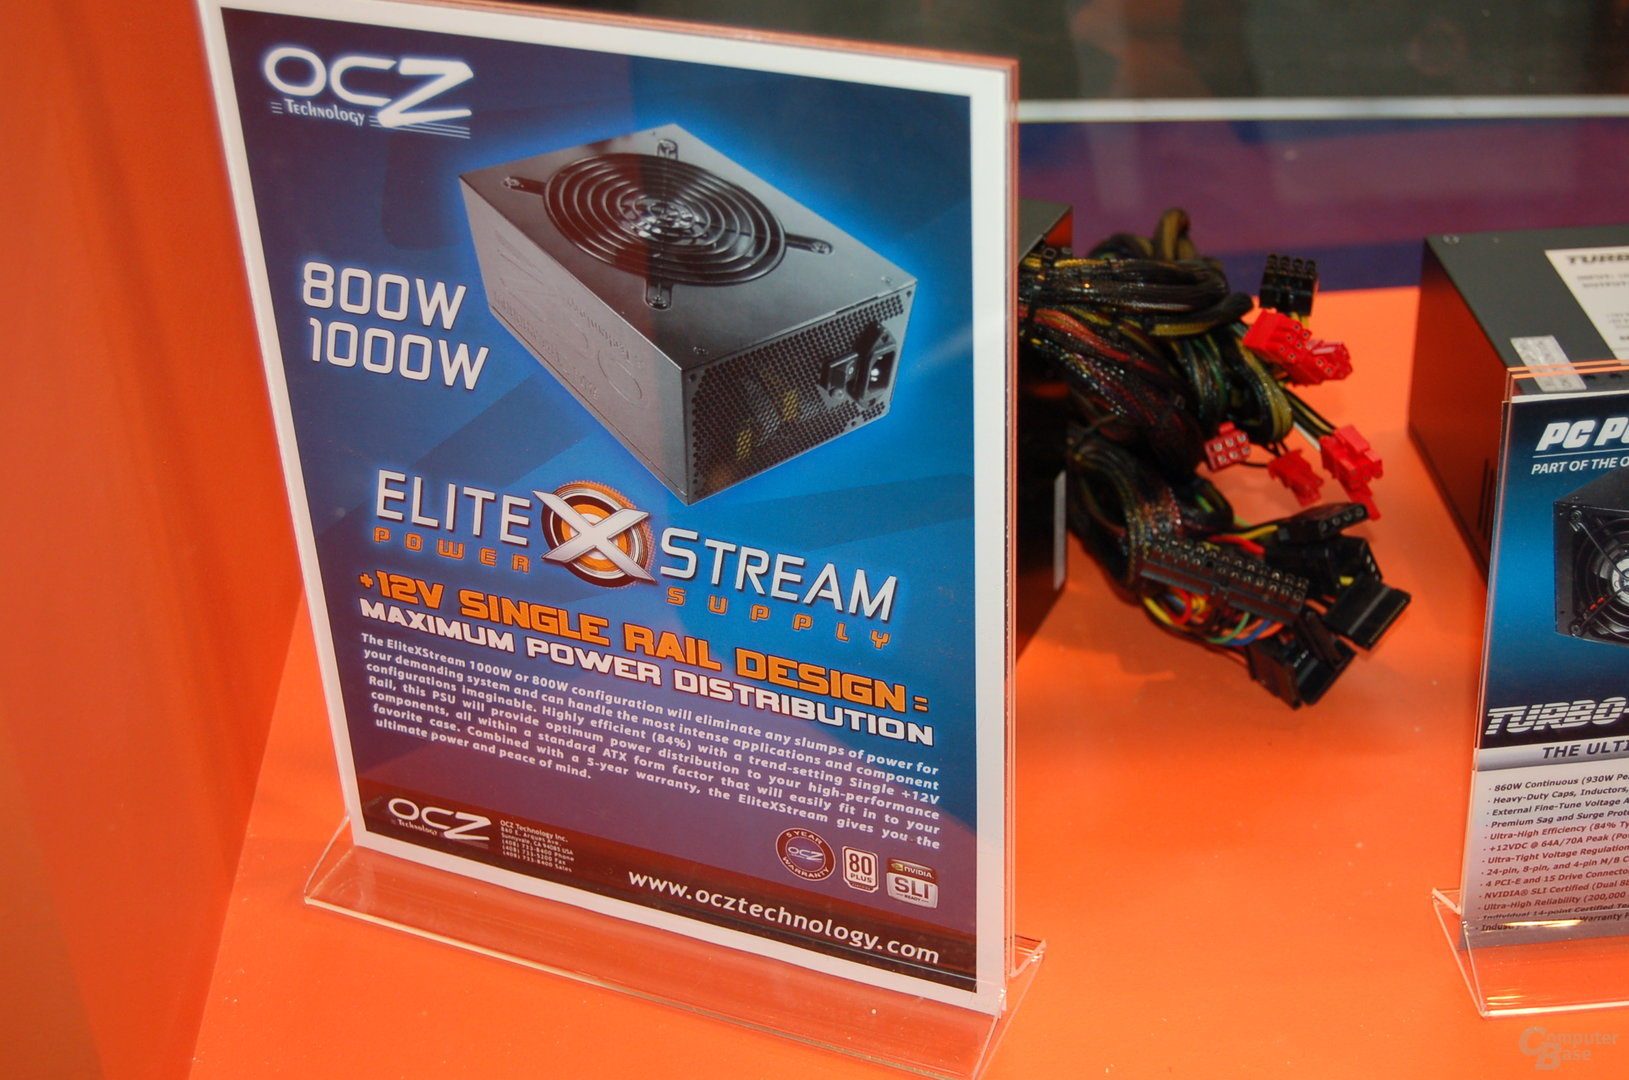 OCZ EliteXstream